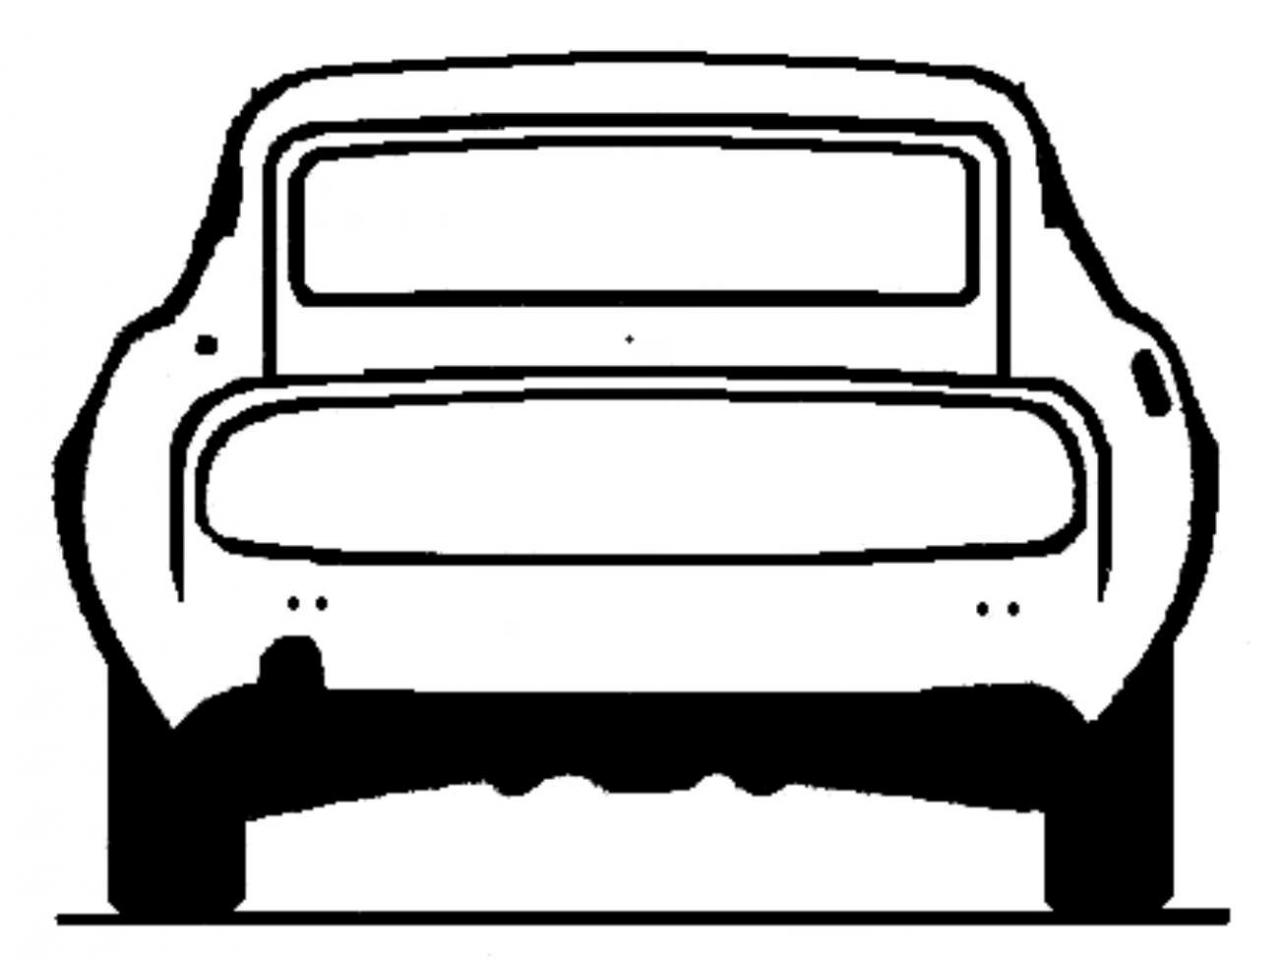 240z Car Drawings